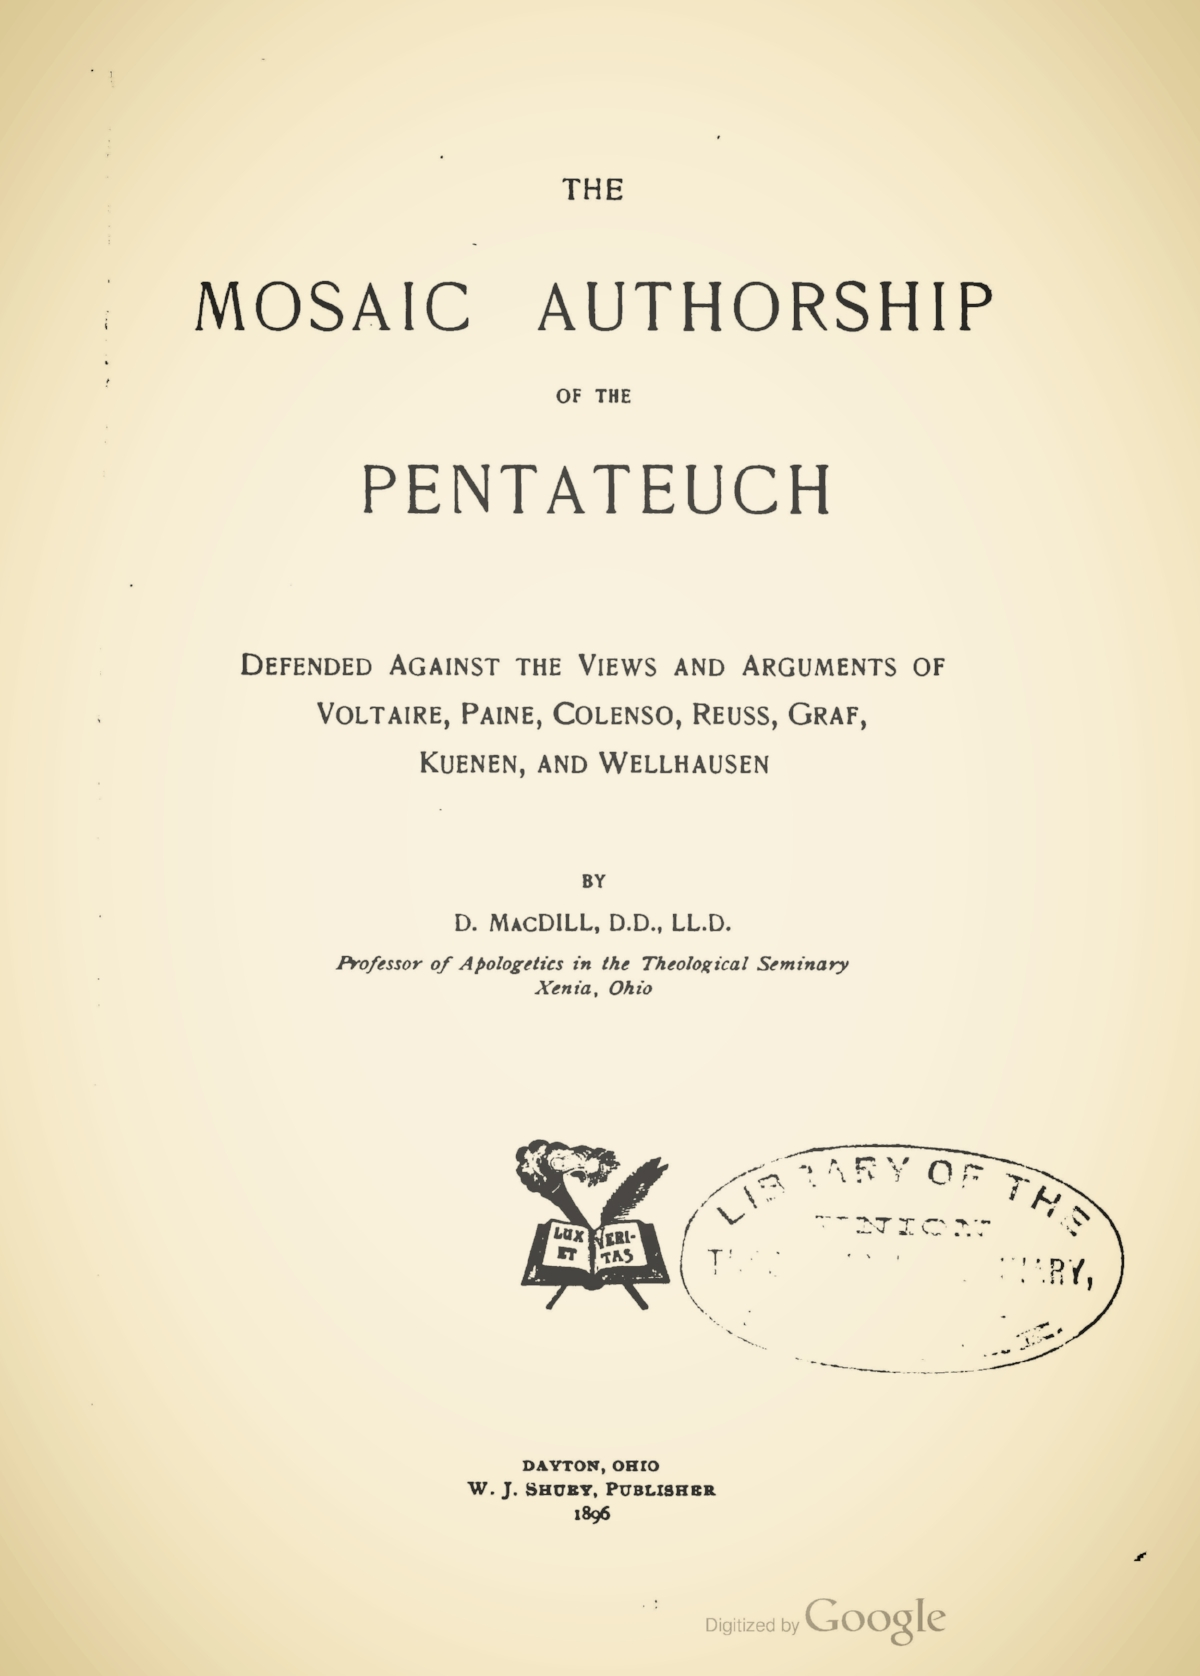 MacDill, David, The Mosaic Authorship of the Pentateuch Title Page.jpg